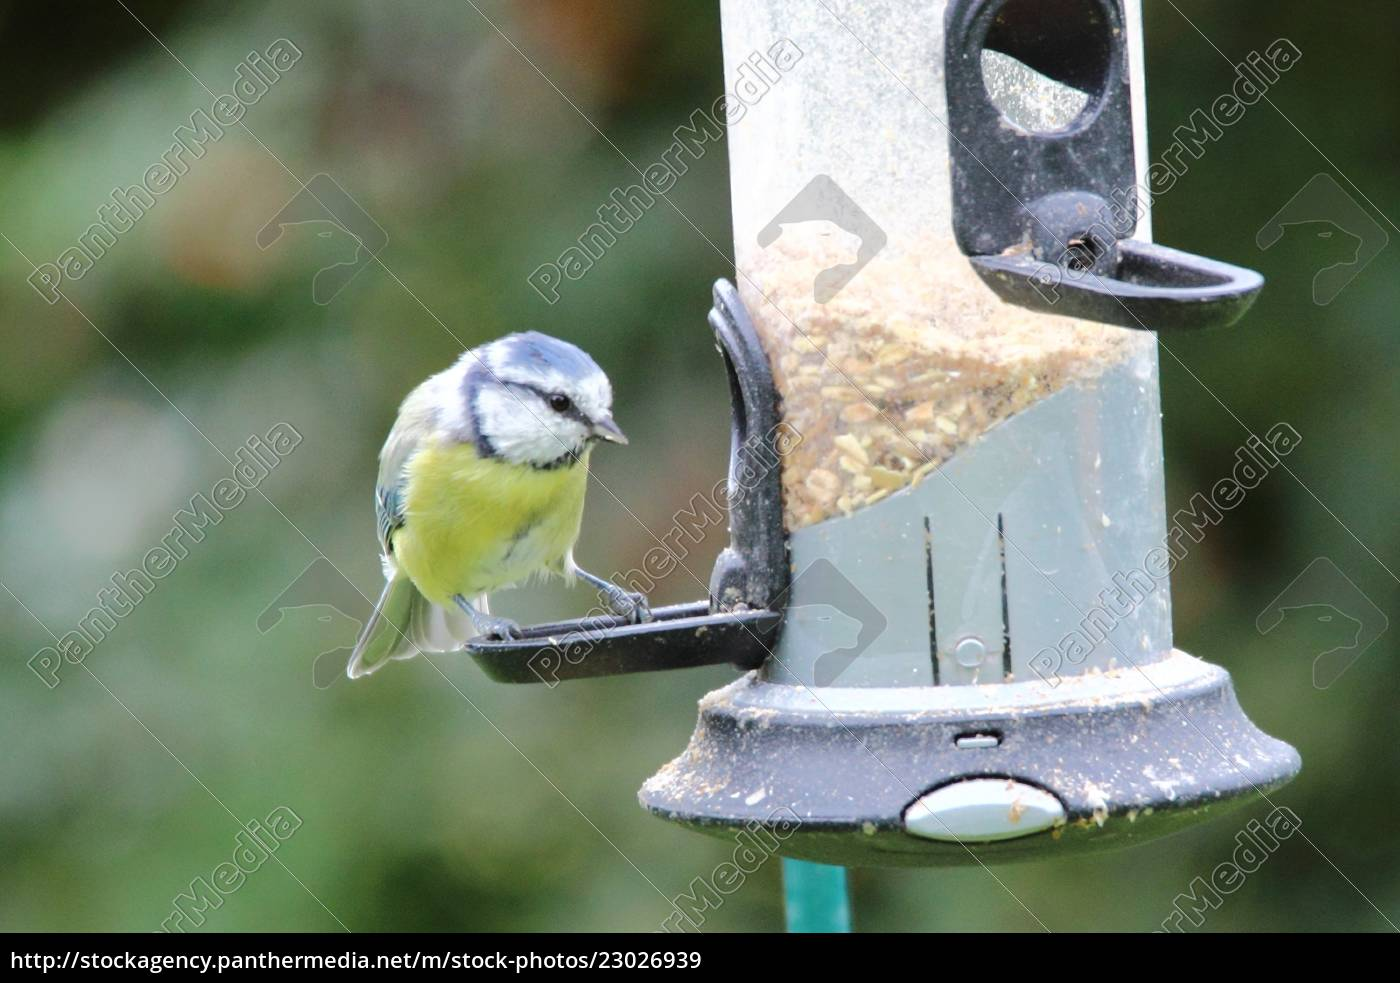 a, blue, tit, visits, the, feeding - 23026939